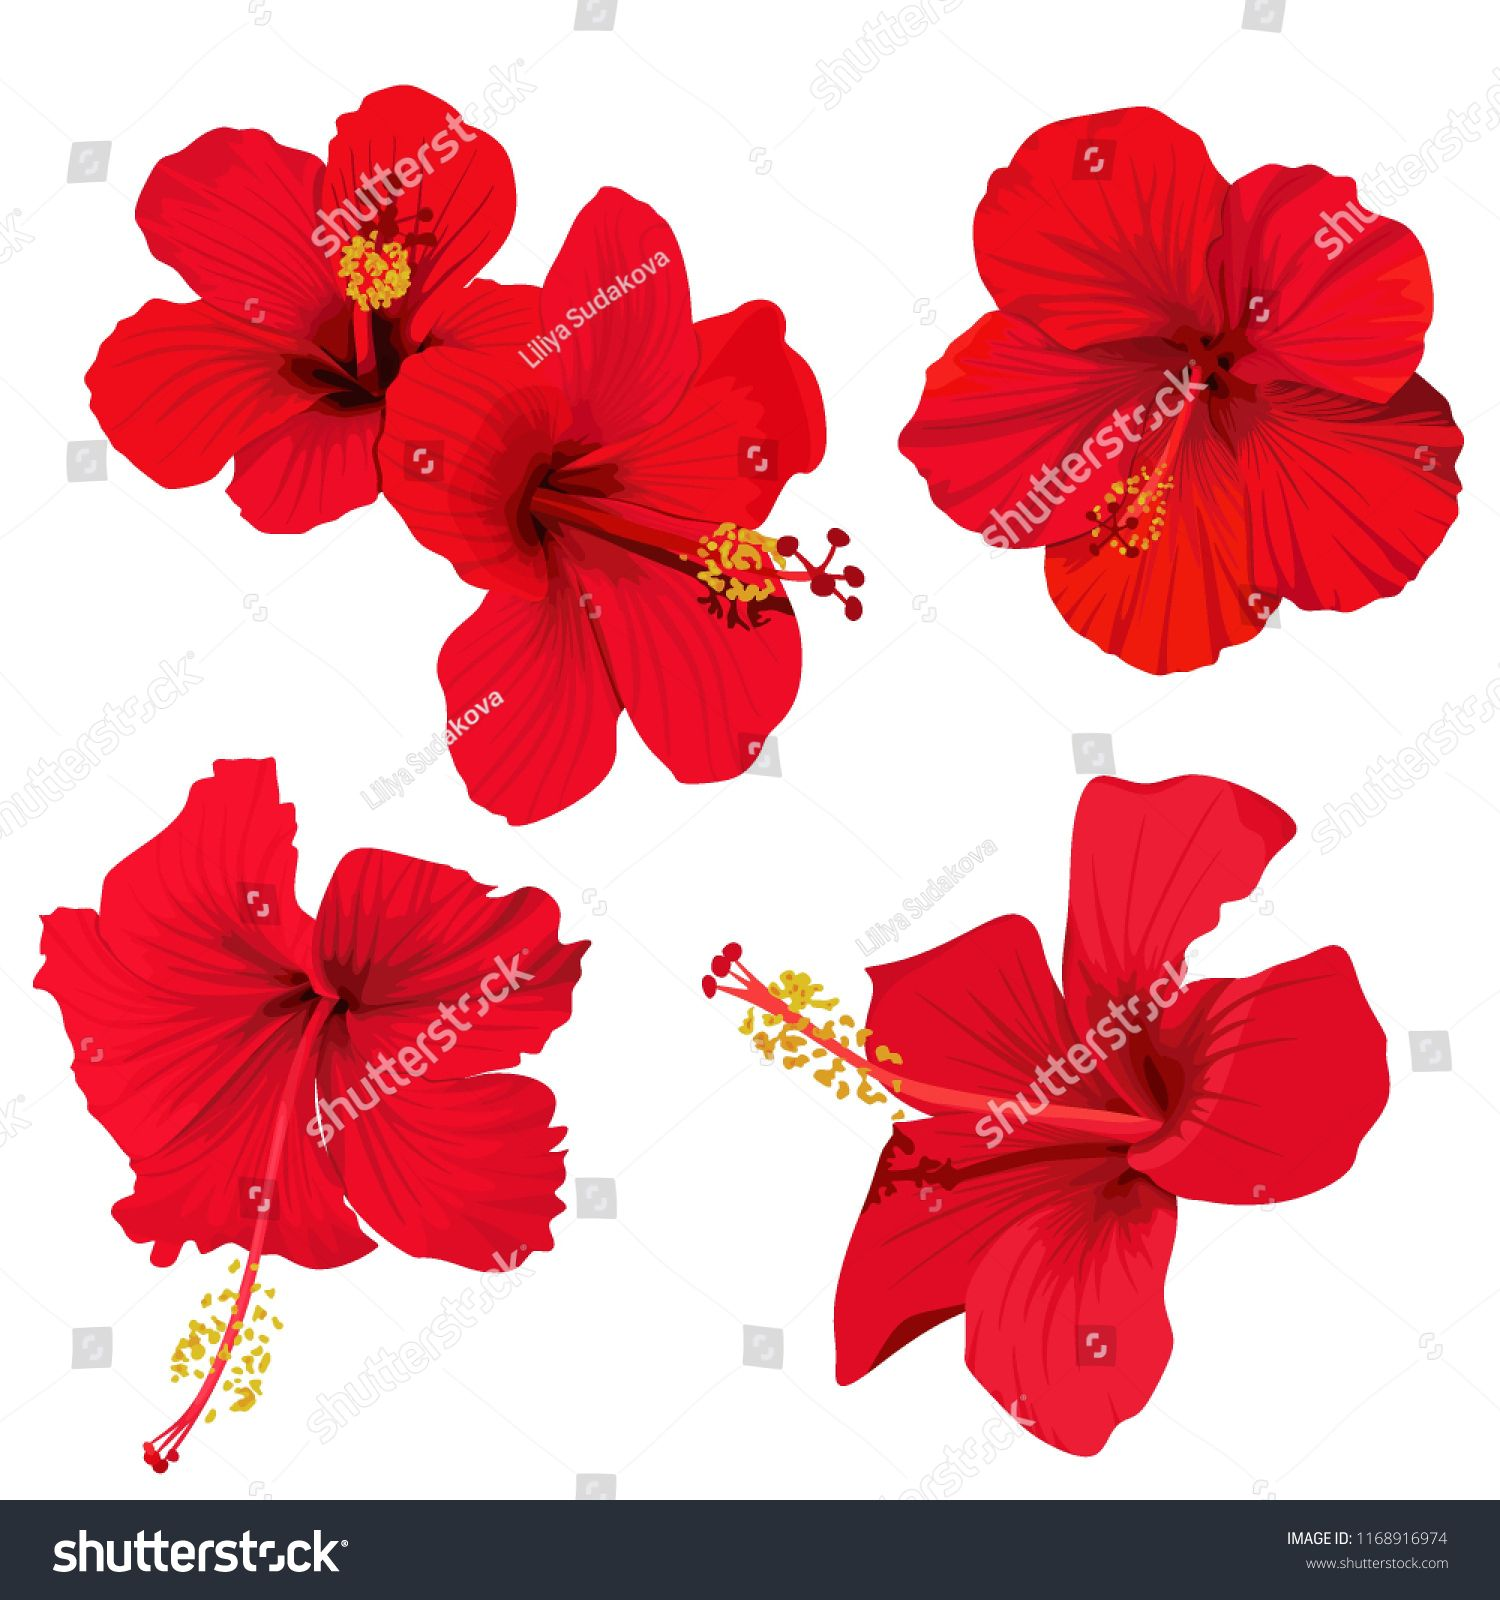 Hibiscus Flower Vector Clip Art Set Of 5 Red Flowers Tropical Planrs Ad Sponsored Clip Art Vector Hibiscus In 2020 Art Set Hibiscus Flowers Clip Art